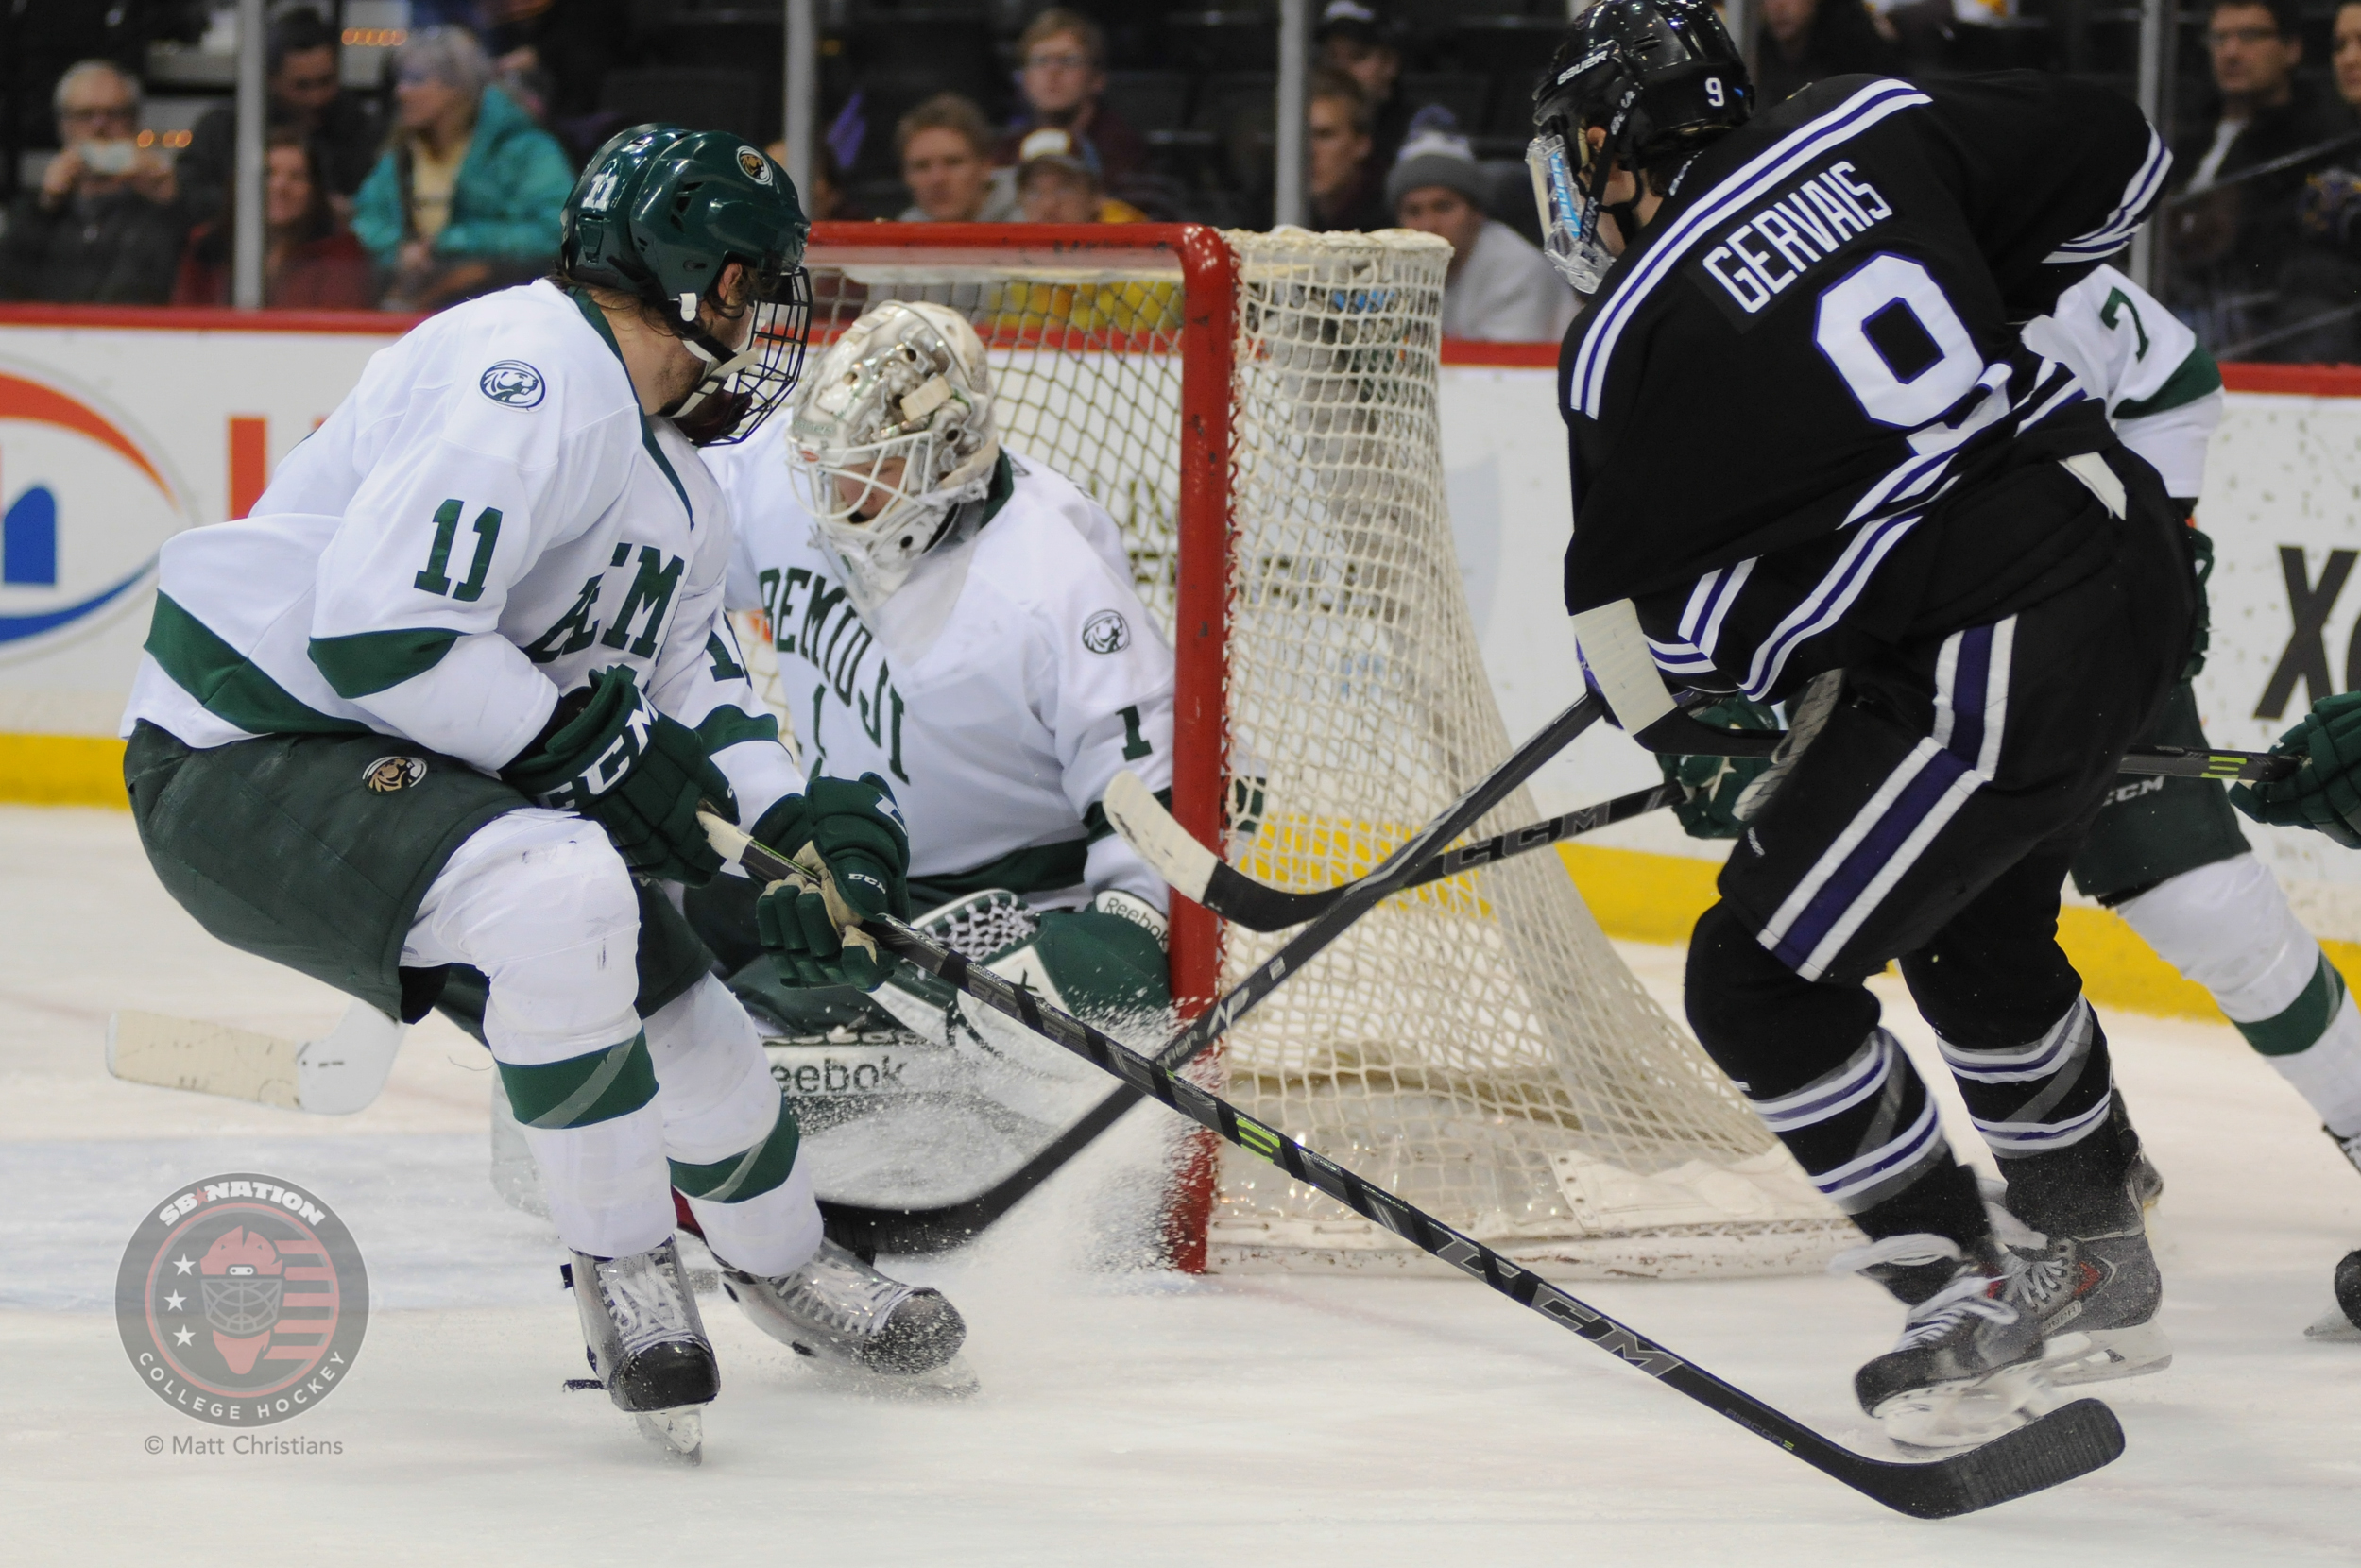 WCHA: Defense Dominating League At The Midway Point